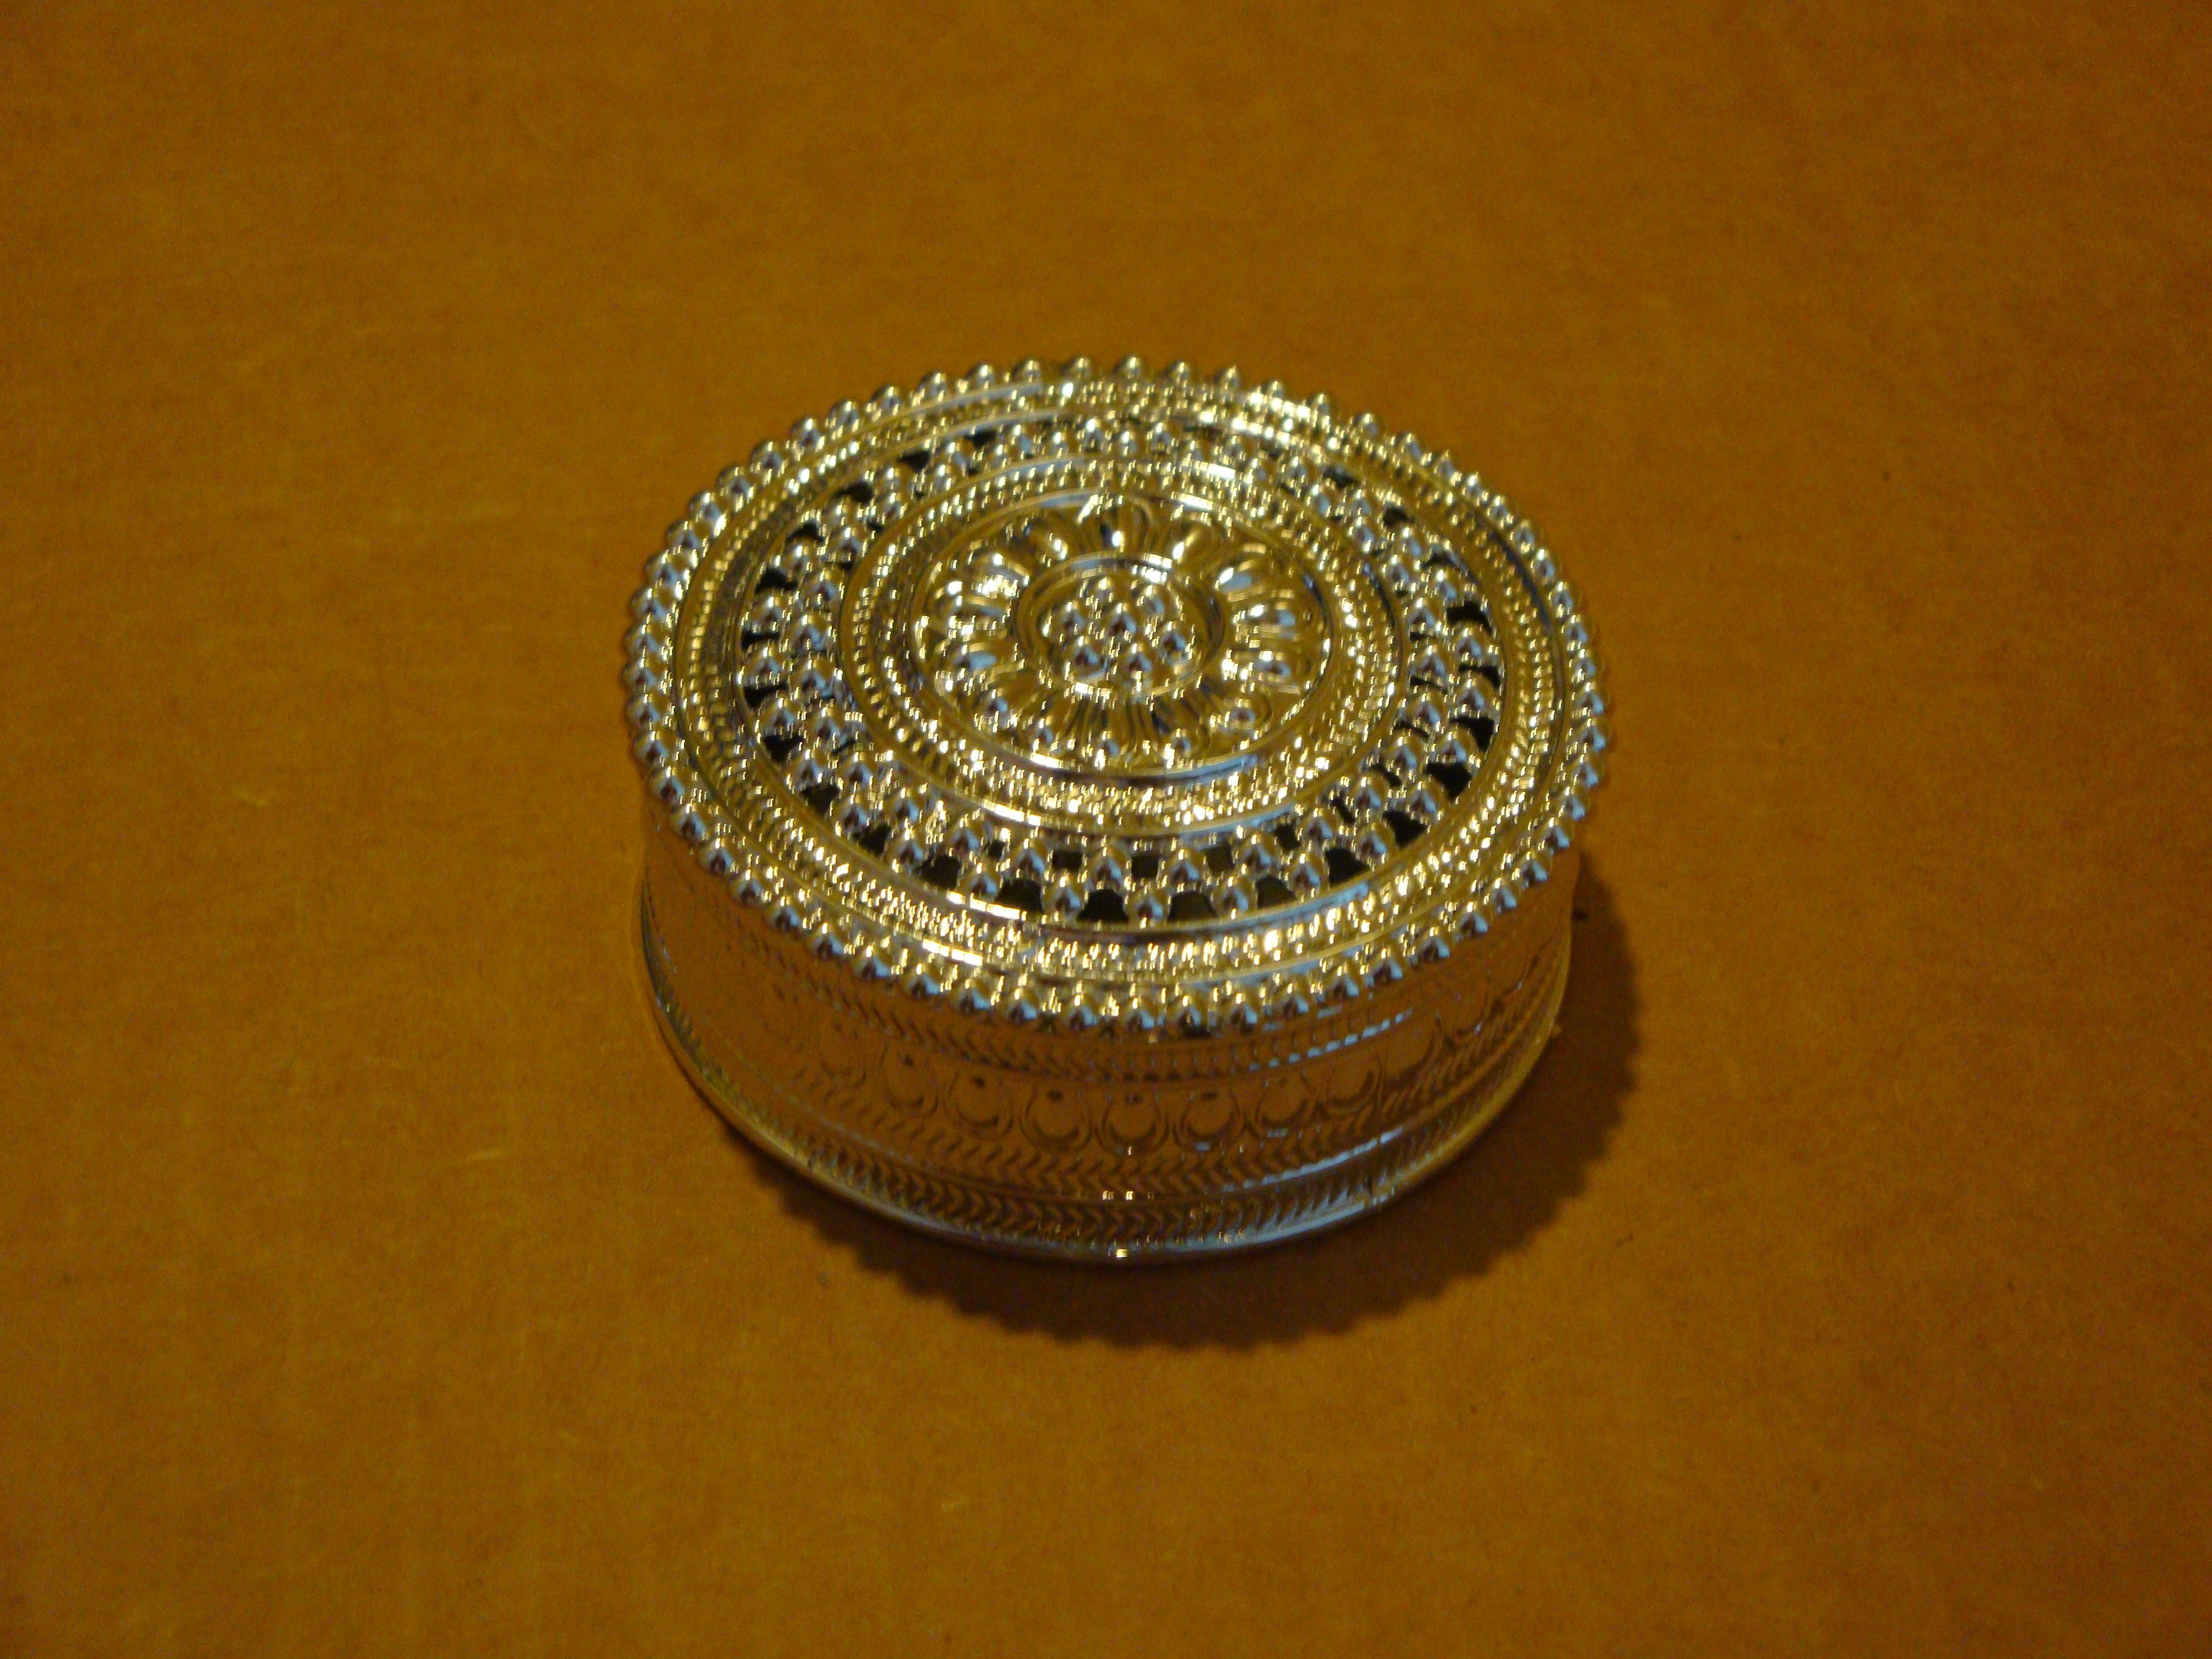 Silver Plastic Jewelry Gift Box (4) $1.50 each